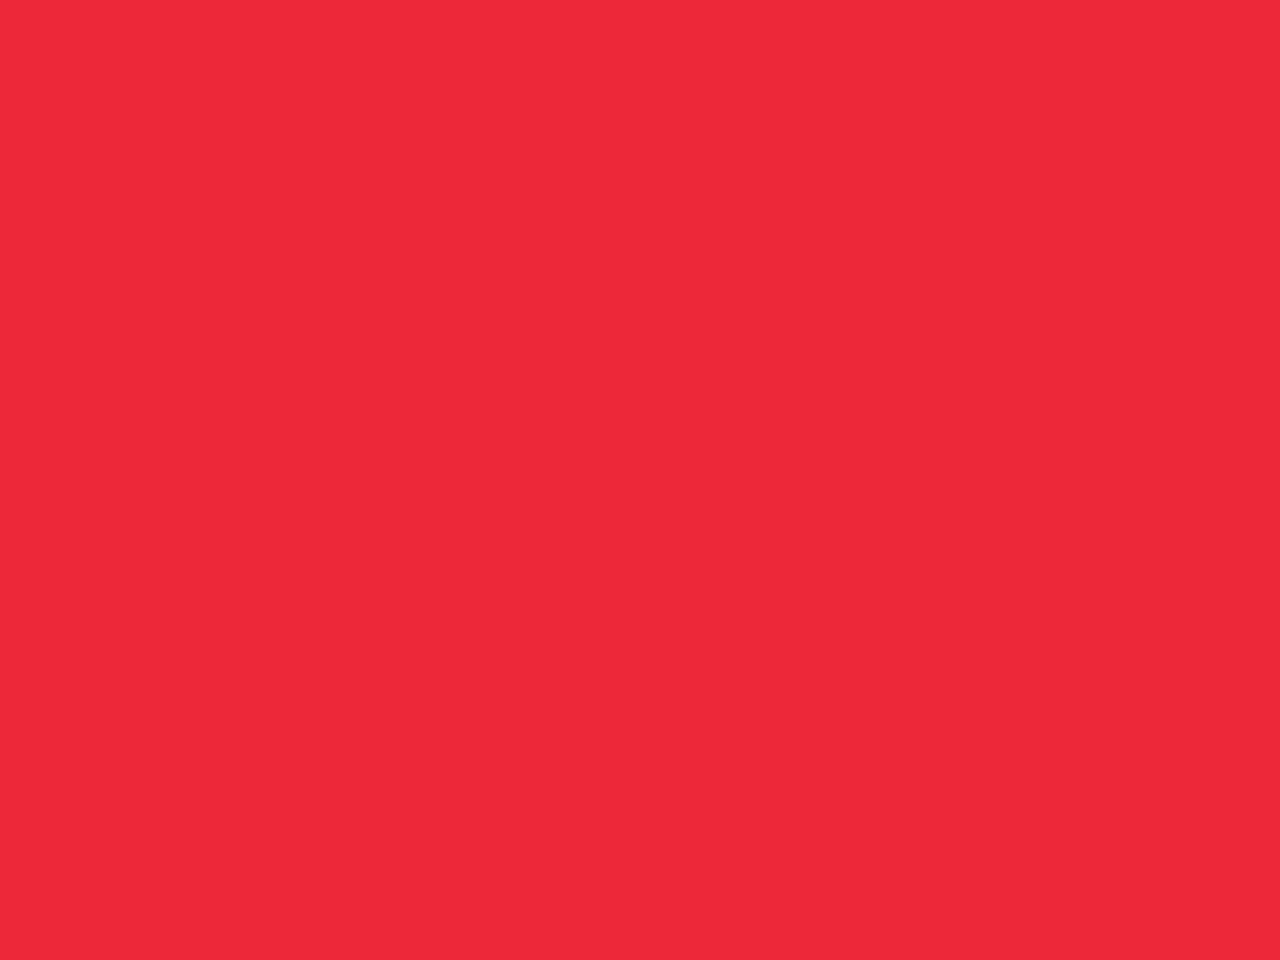 1280x960 Imperial Red Solid Color Background